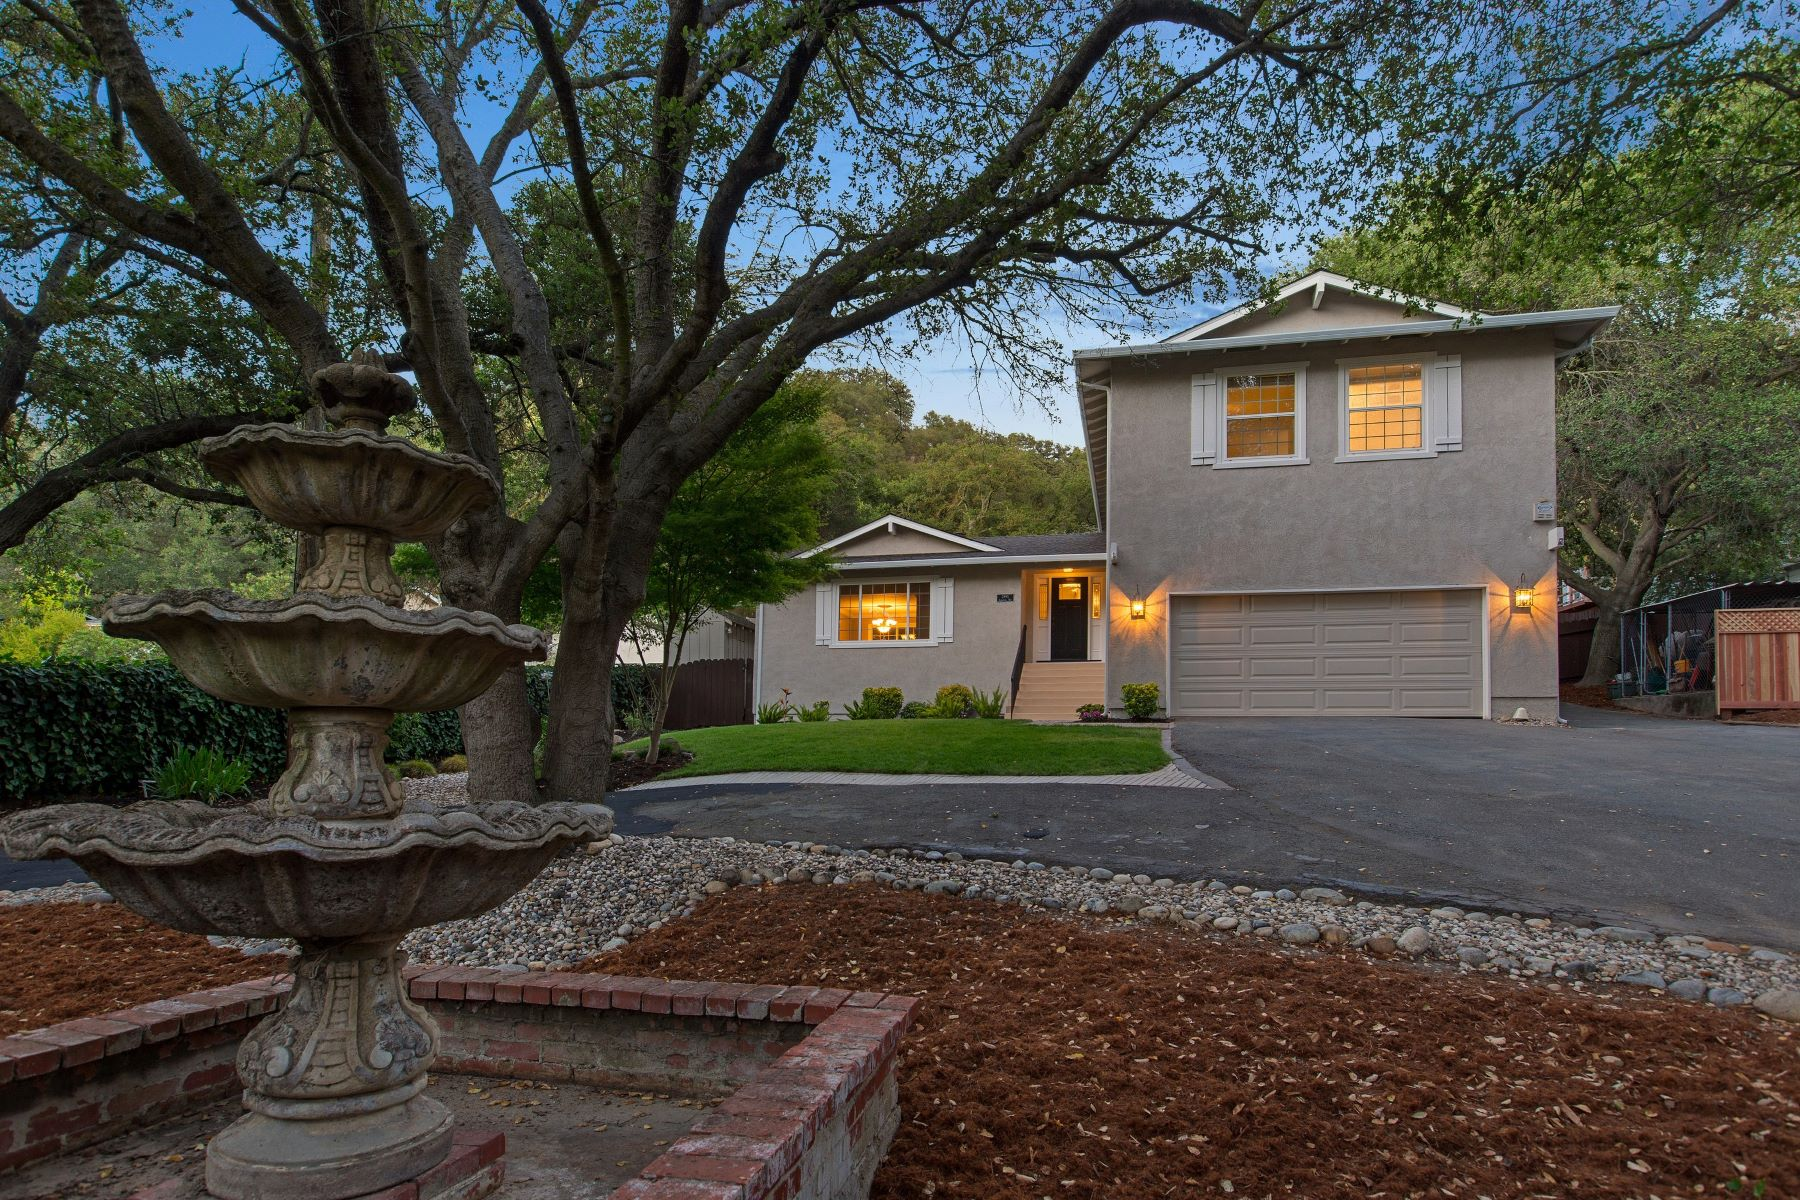 Single Family Homes for Active at Secluded Craftsman 3995 Alhambra Way Martinez, California 94553 United States